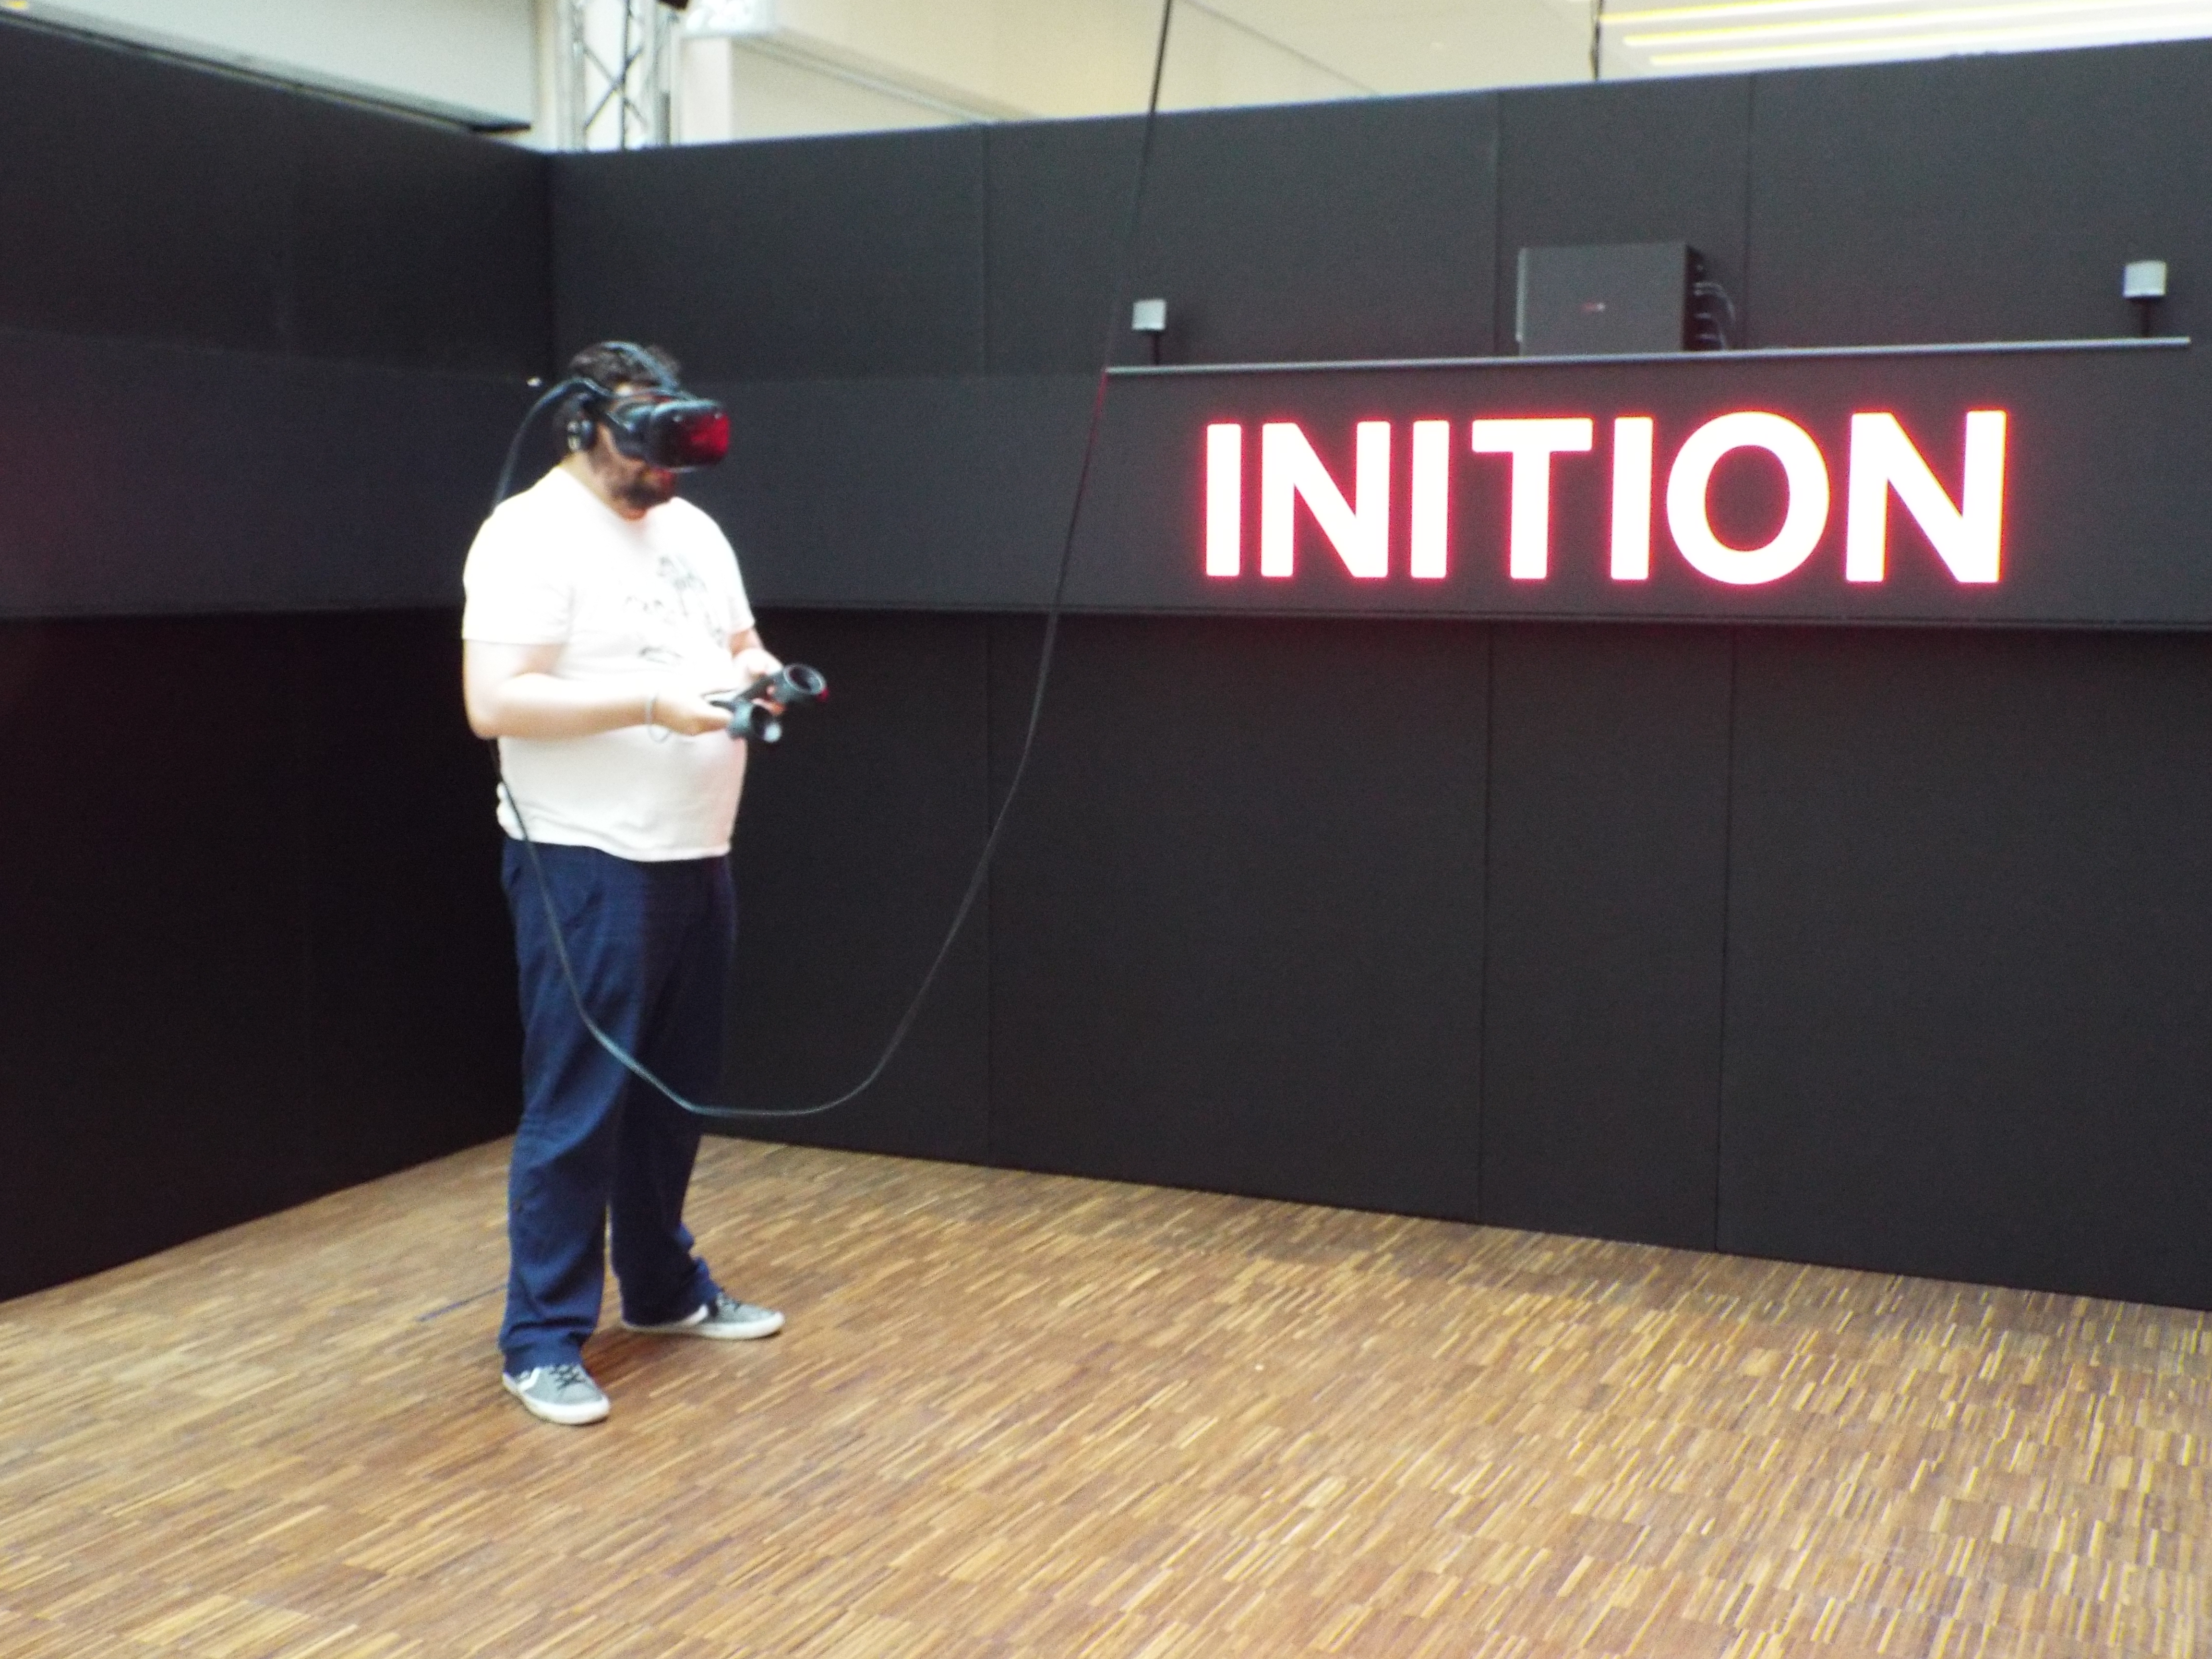 Experience: #VR goes #TechStyle at The Mailbox